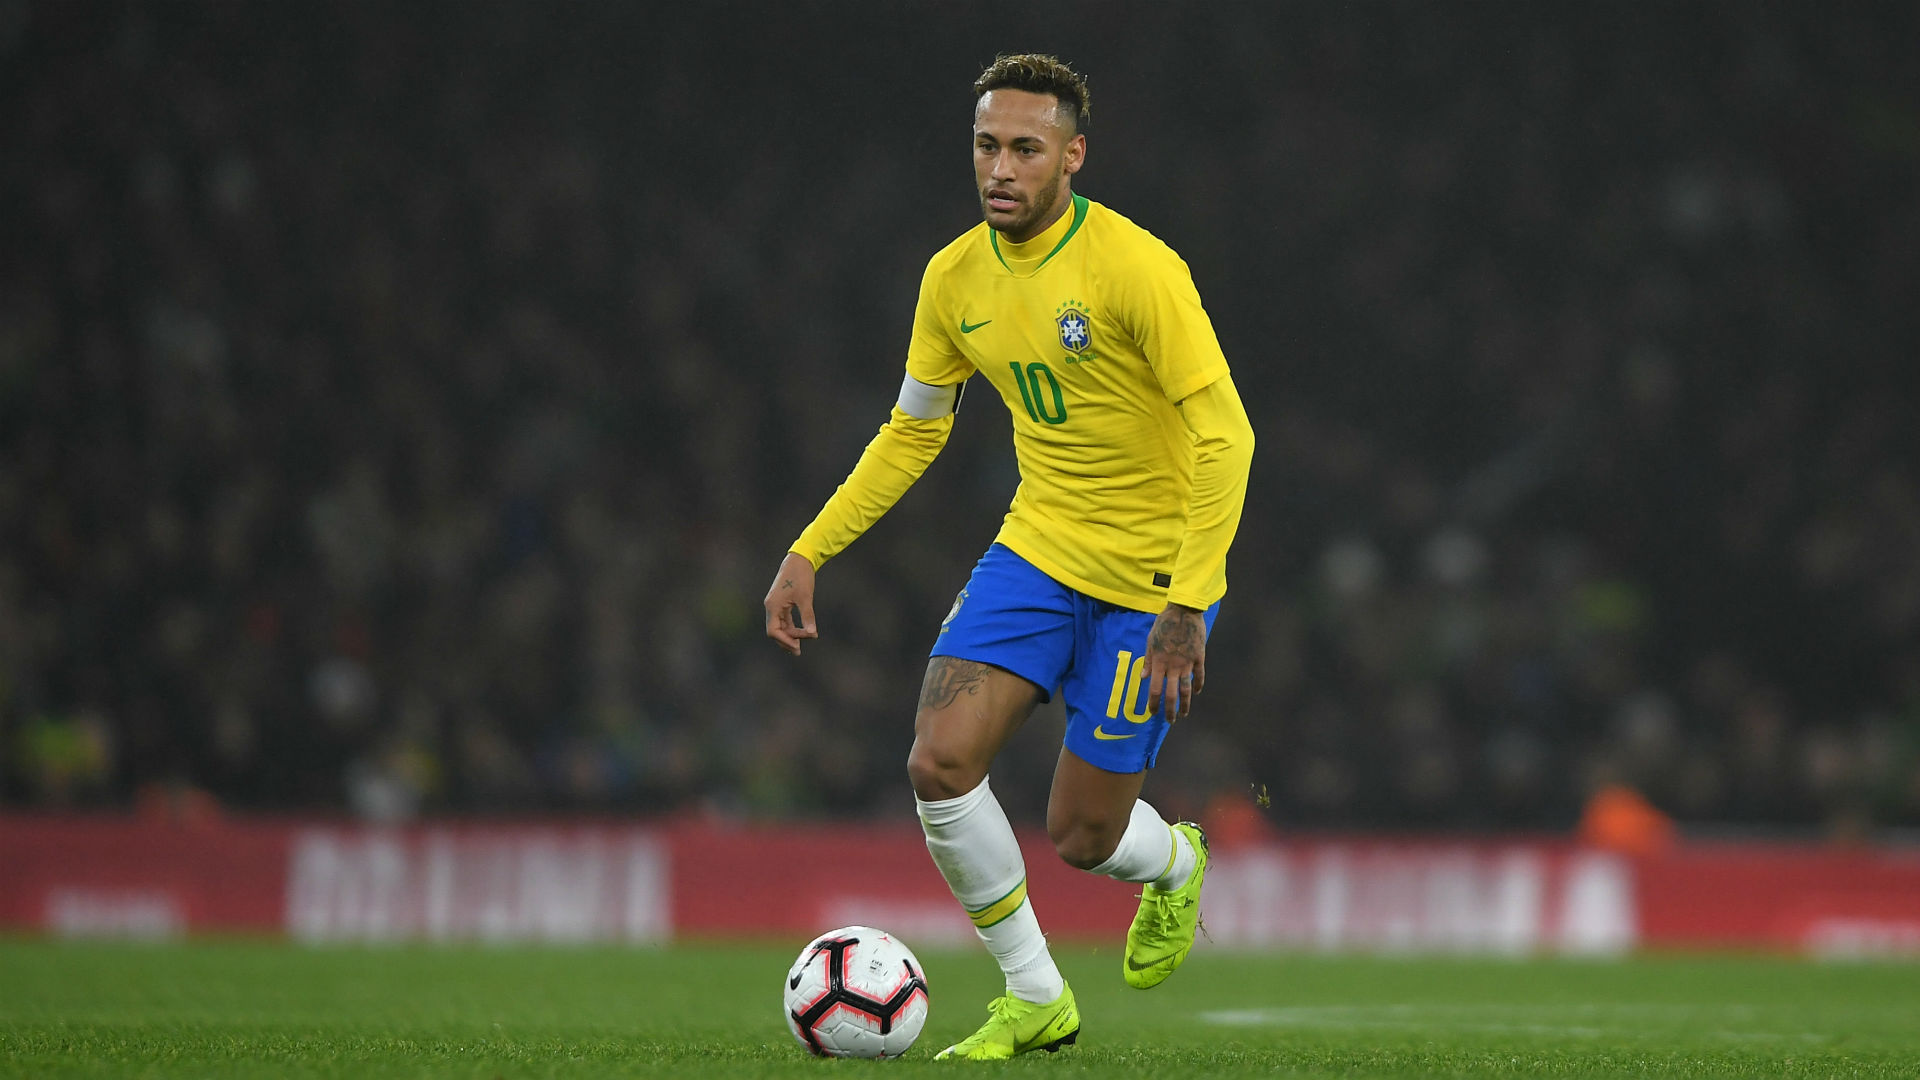 Pele: Neymar simulation difficult to defend